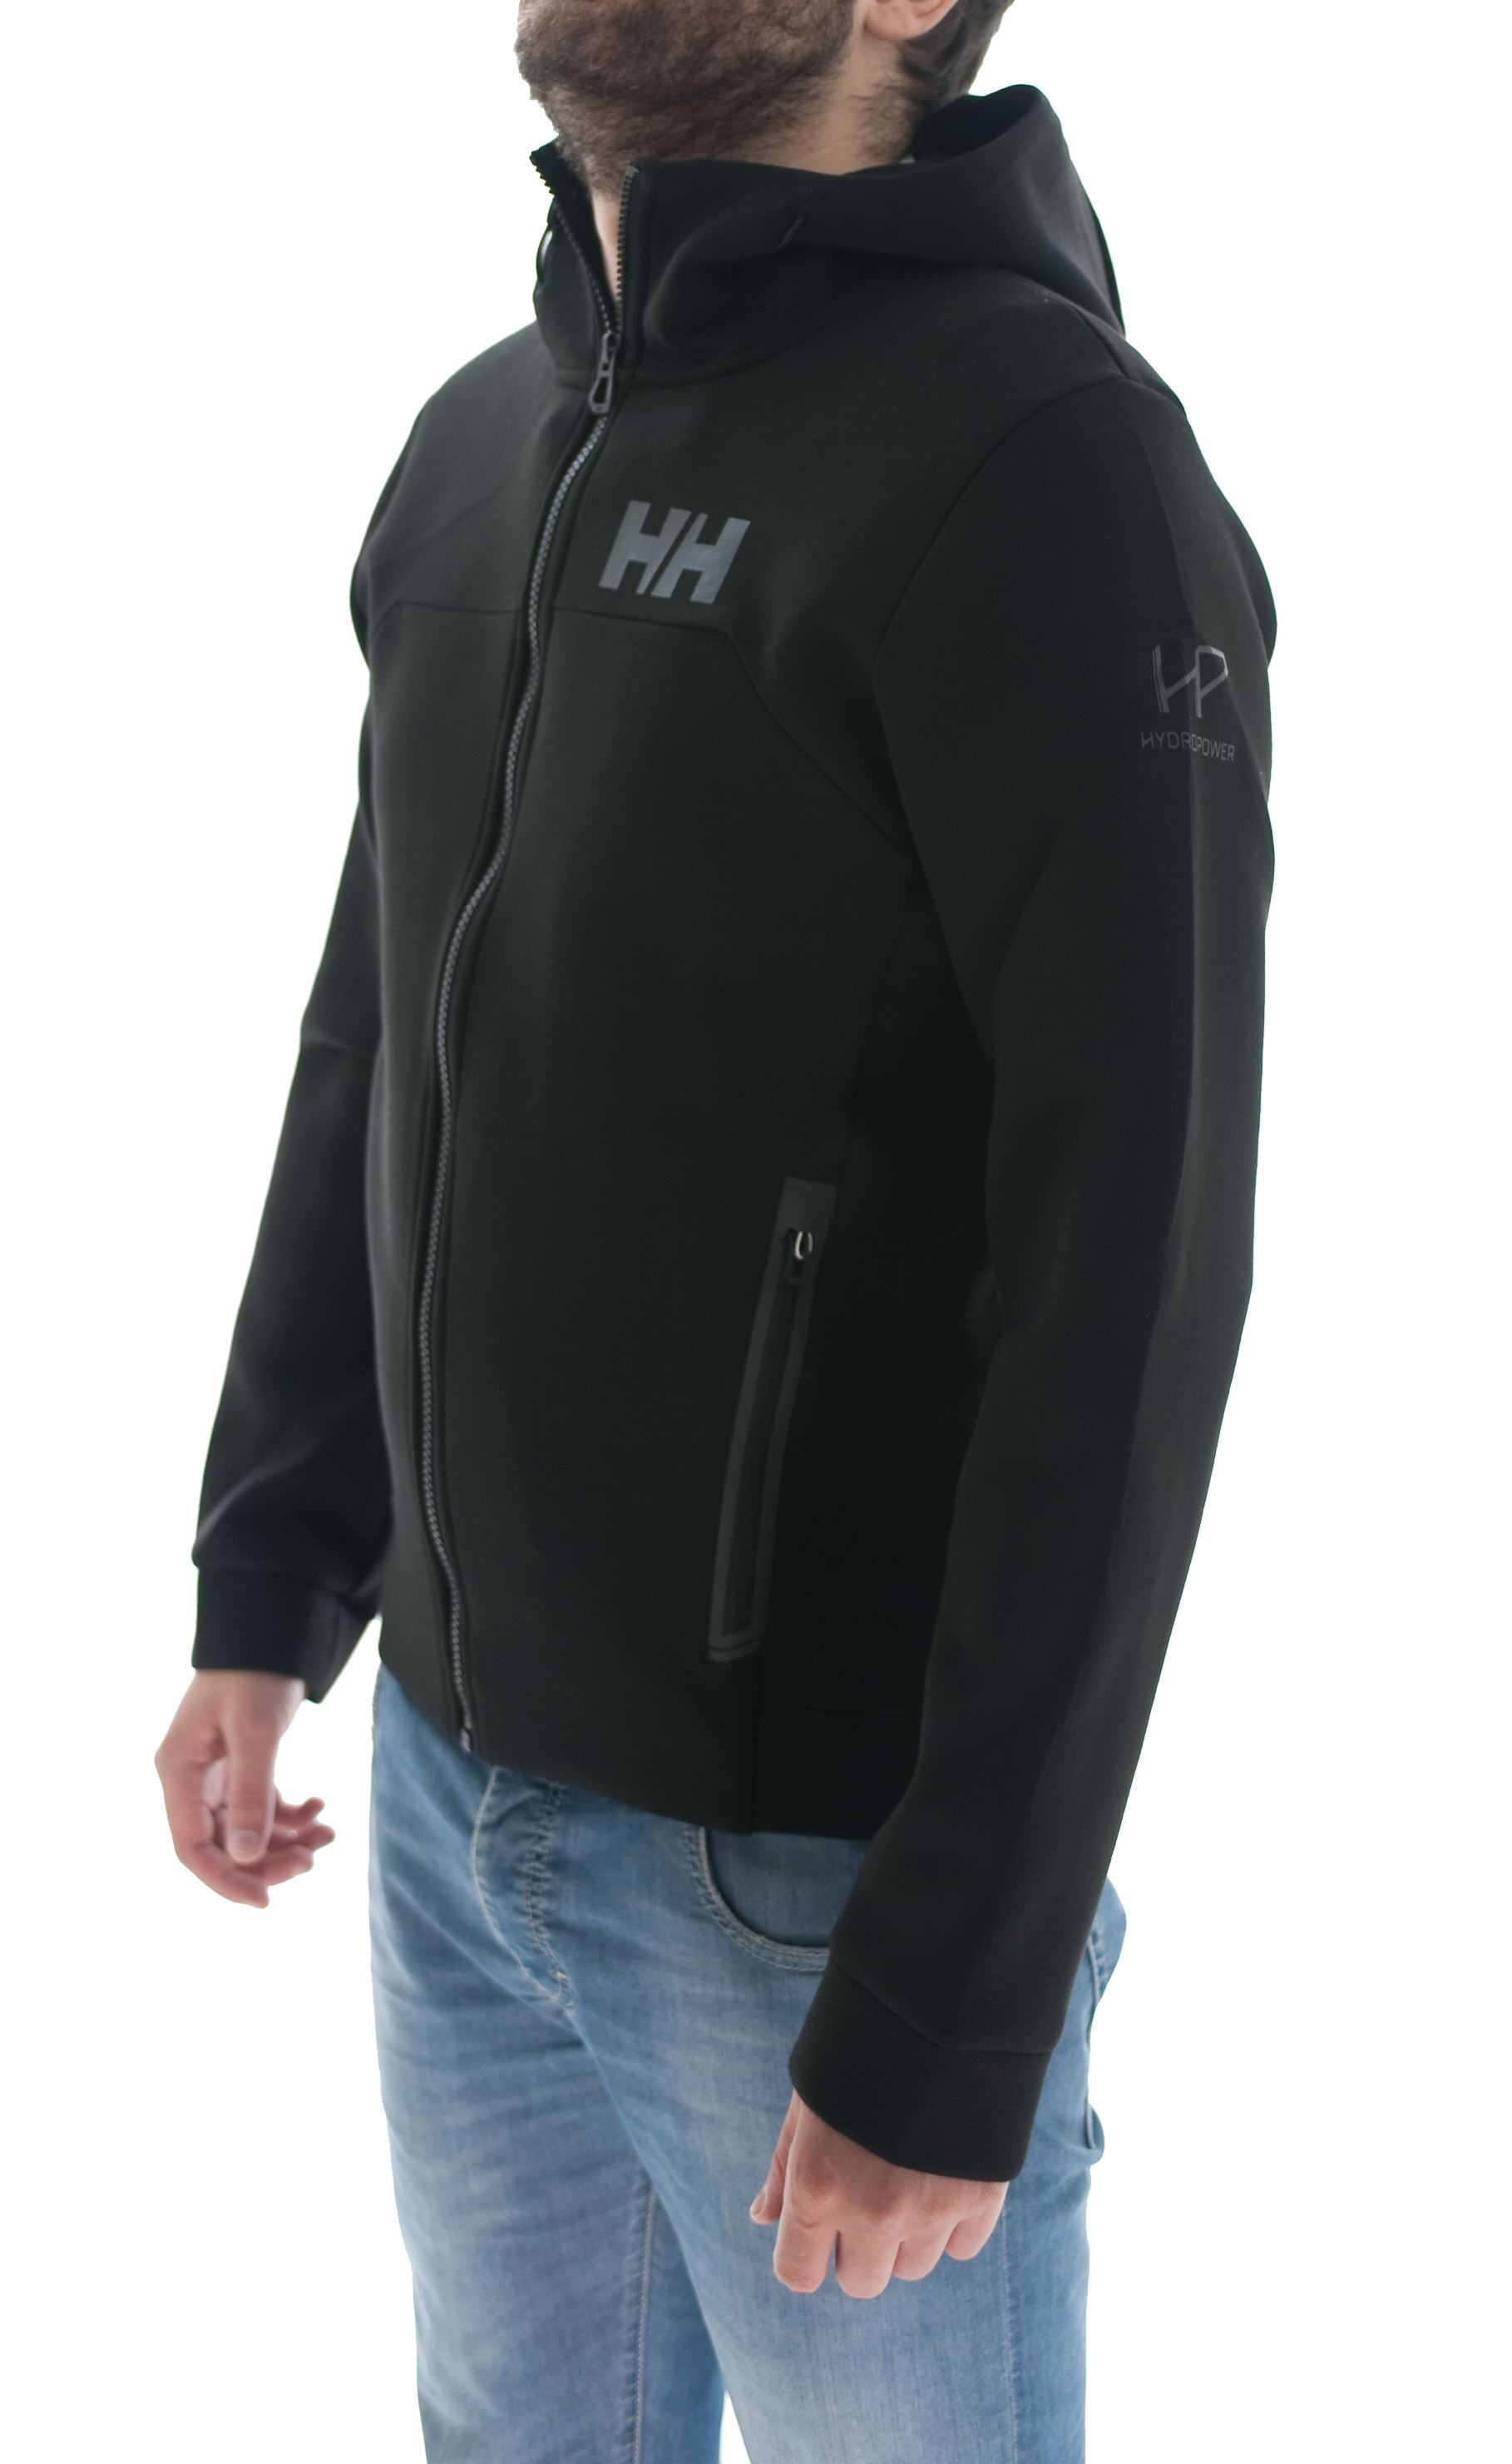 Picture of HP Ocean FZ Hoodie Black sweatshirt